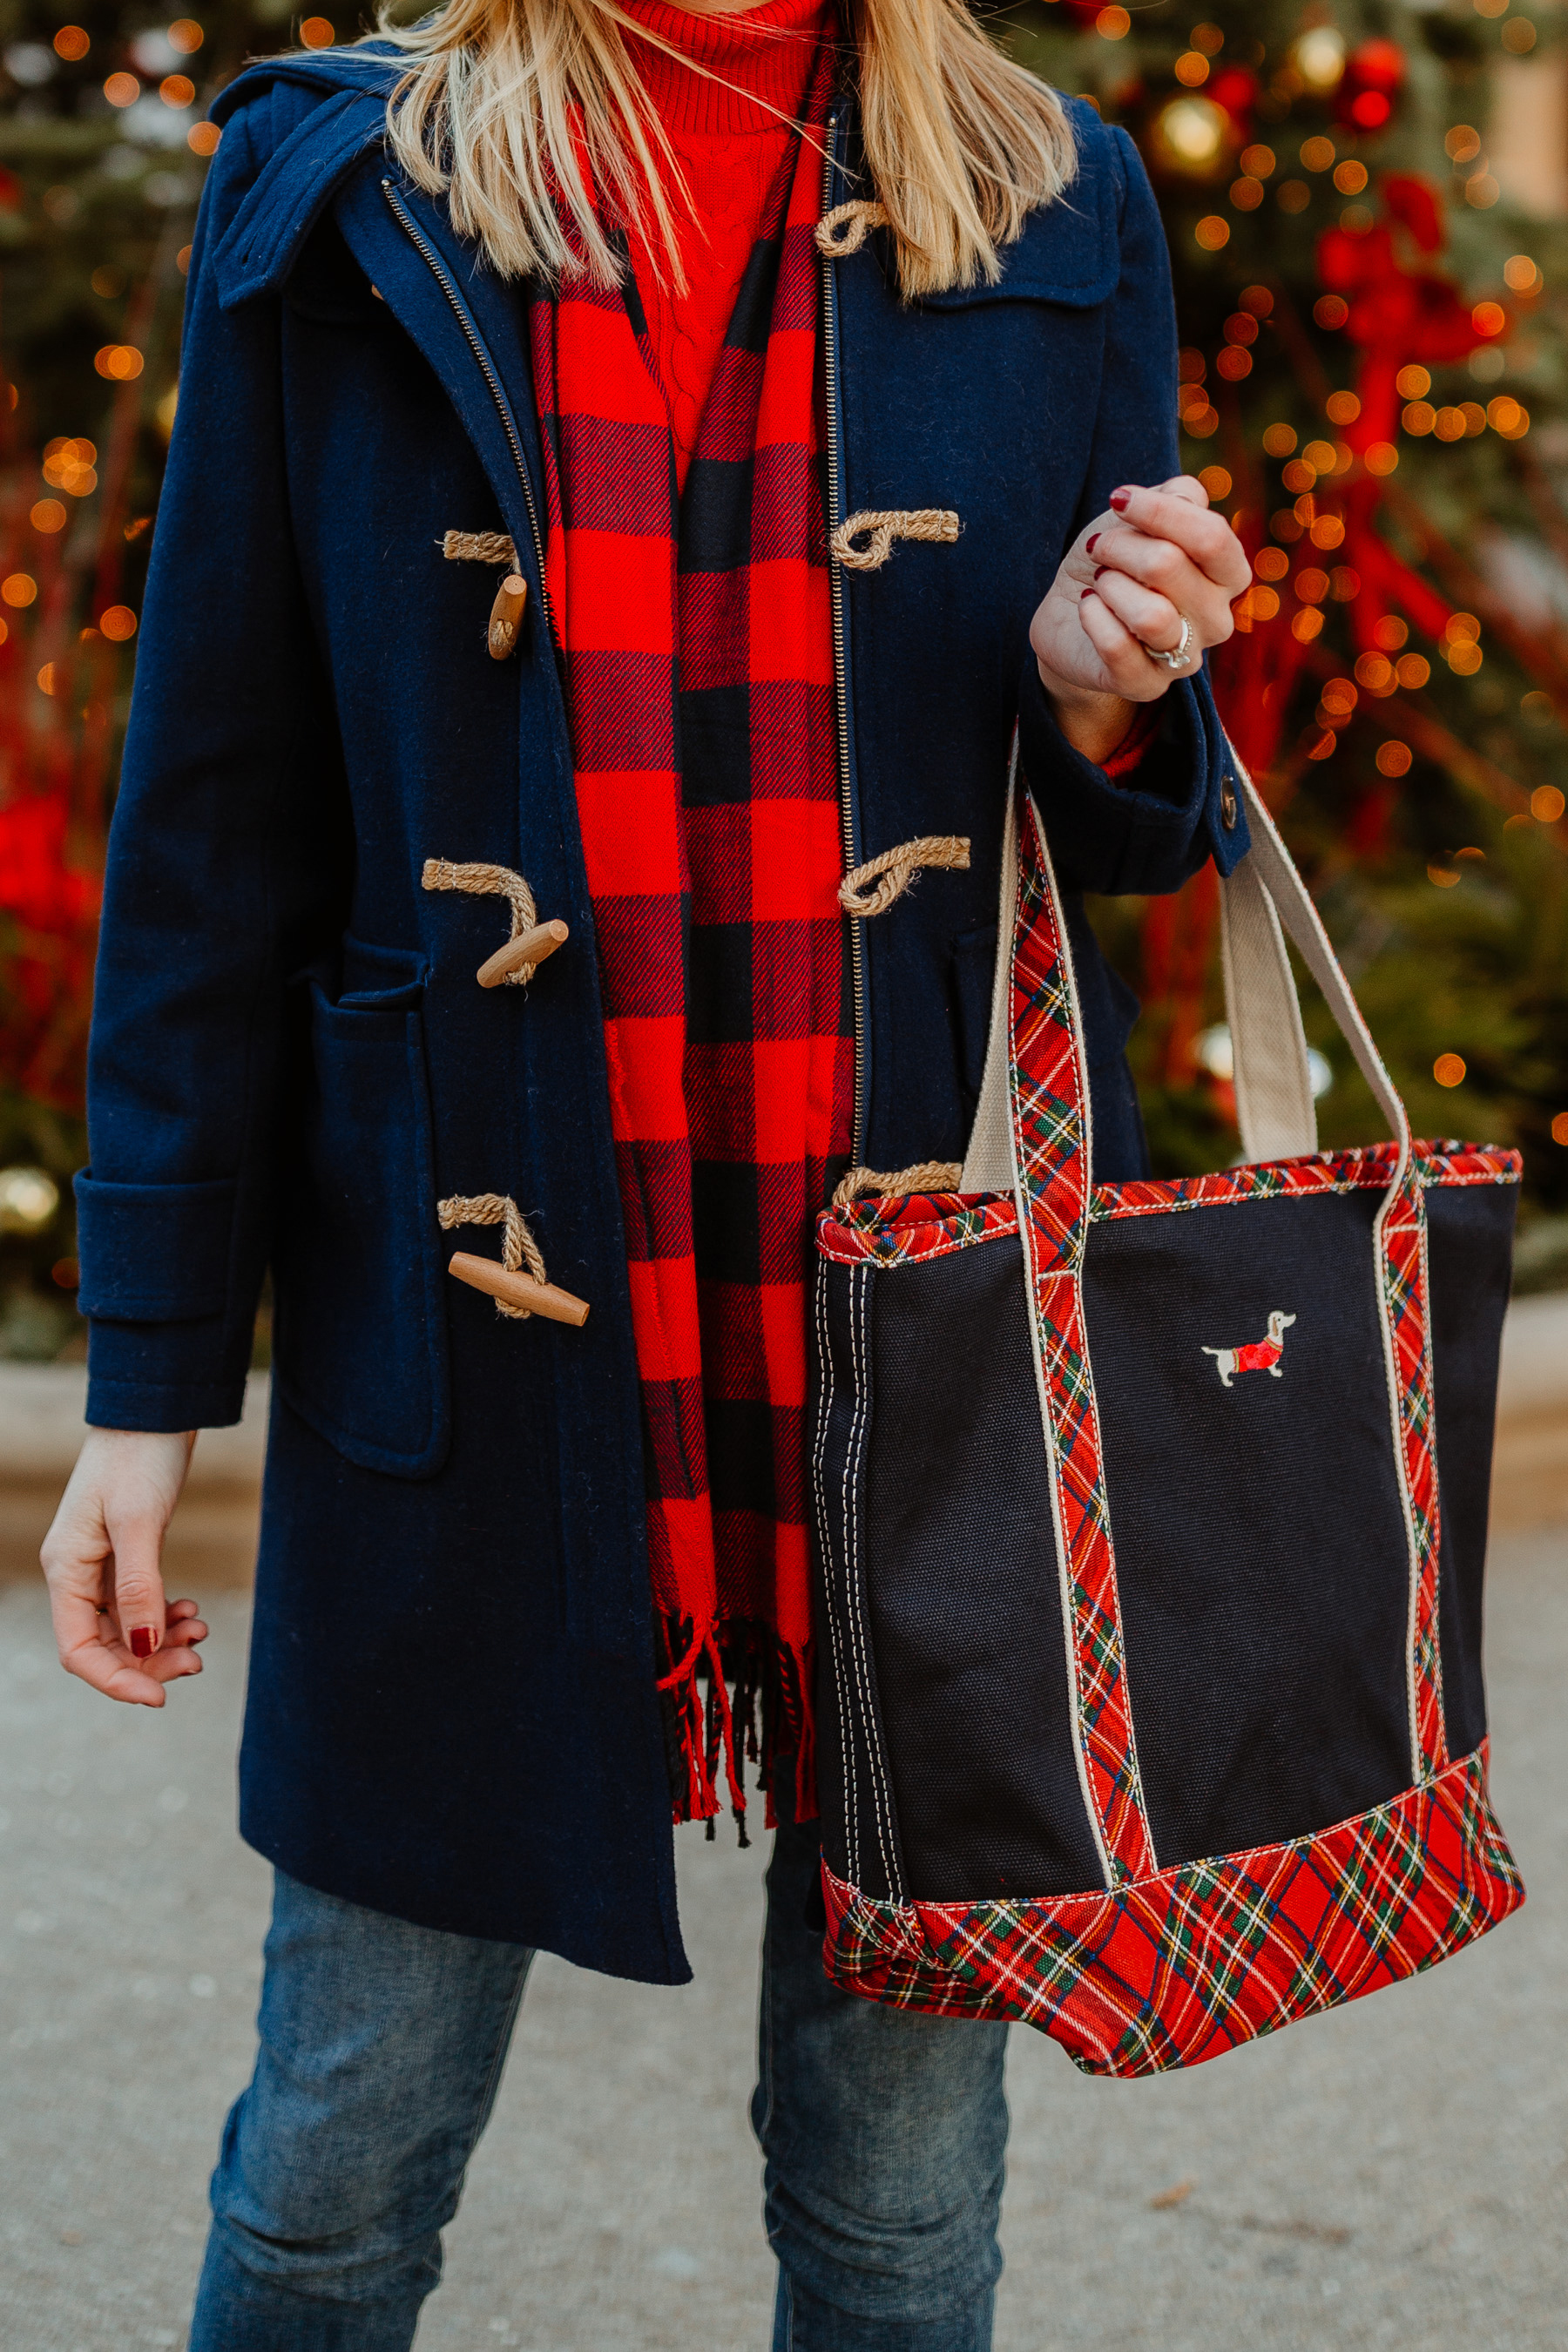 Navy Duffle Coat(On sale!)/ Cable-Knit Turtleneck Sweater / Buffalo Plaid Scarf /Lands' End Plaid Dachshund Tote c/o /Skinny Jeans(I'm wearingthe maternity version, though.)